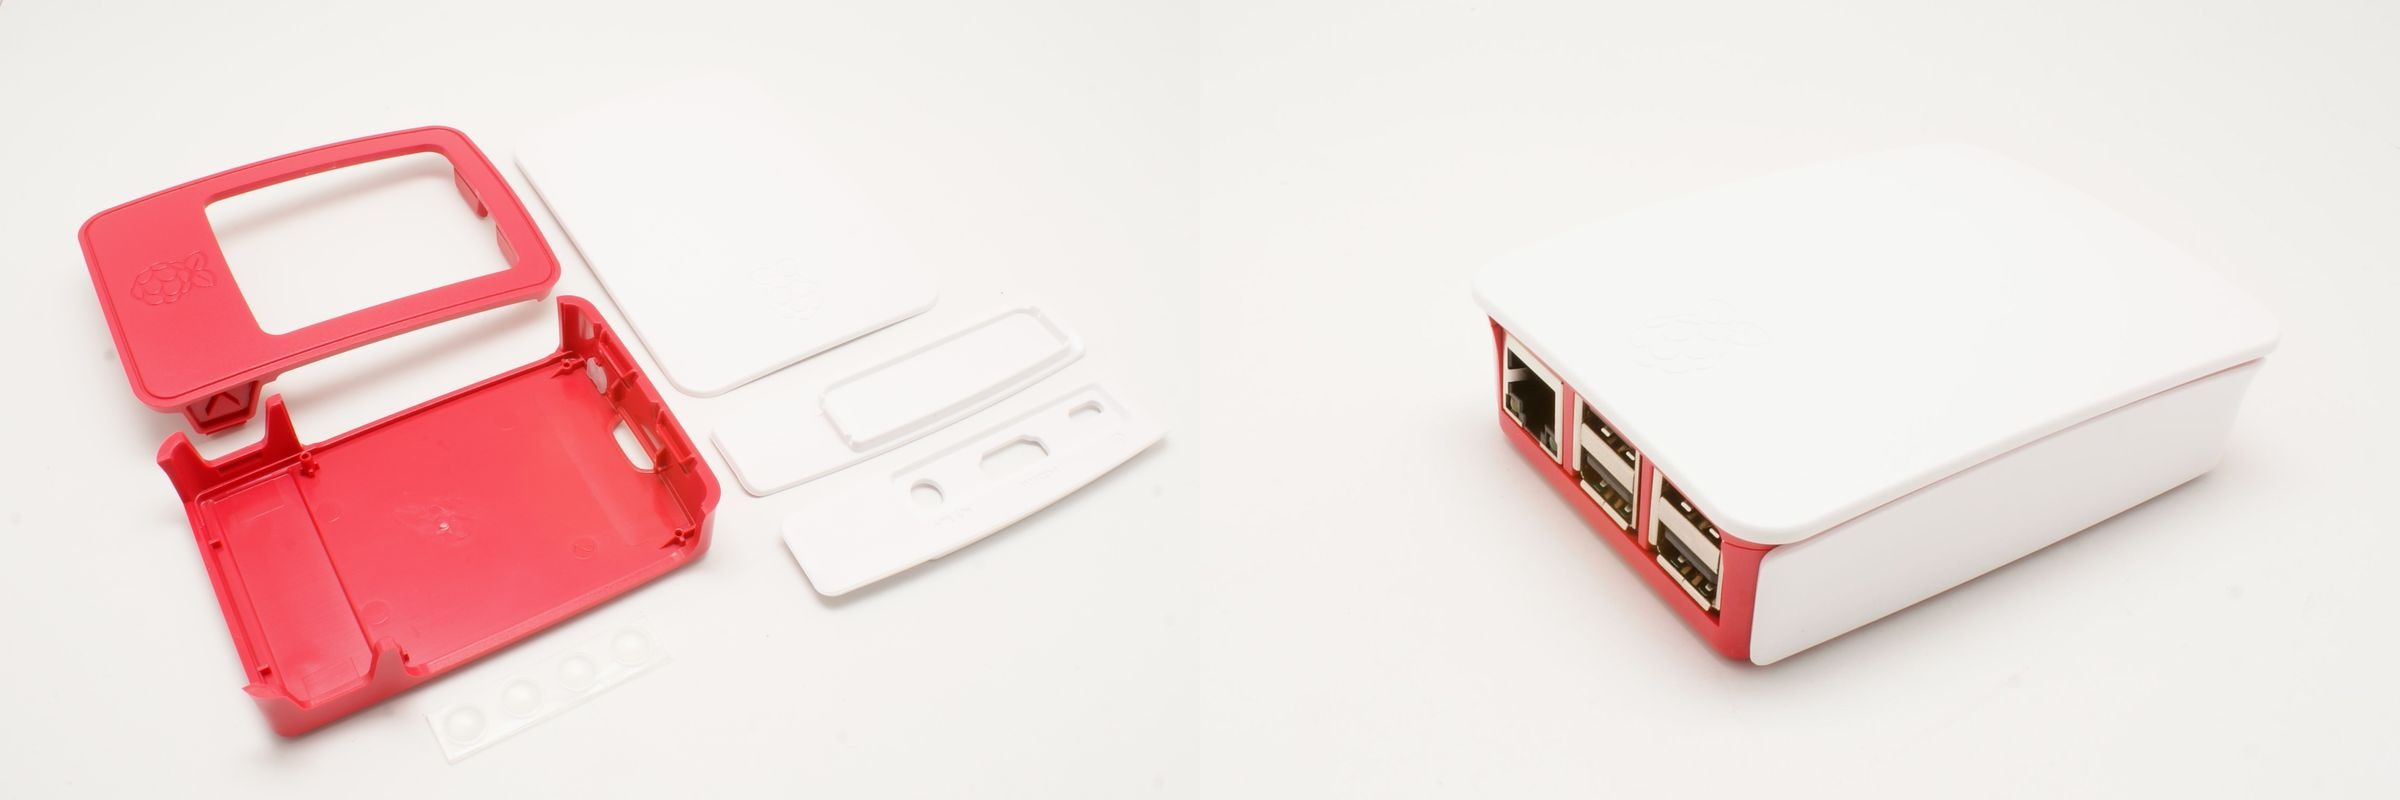 Raspberry-Pi-3-Red-White-Case